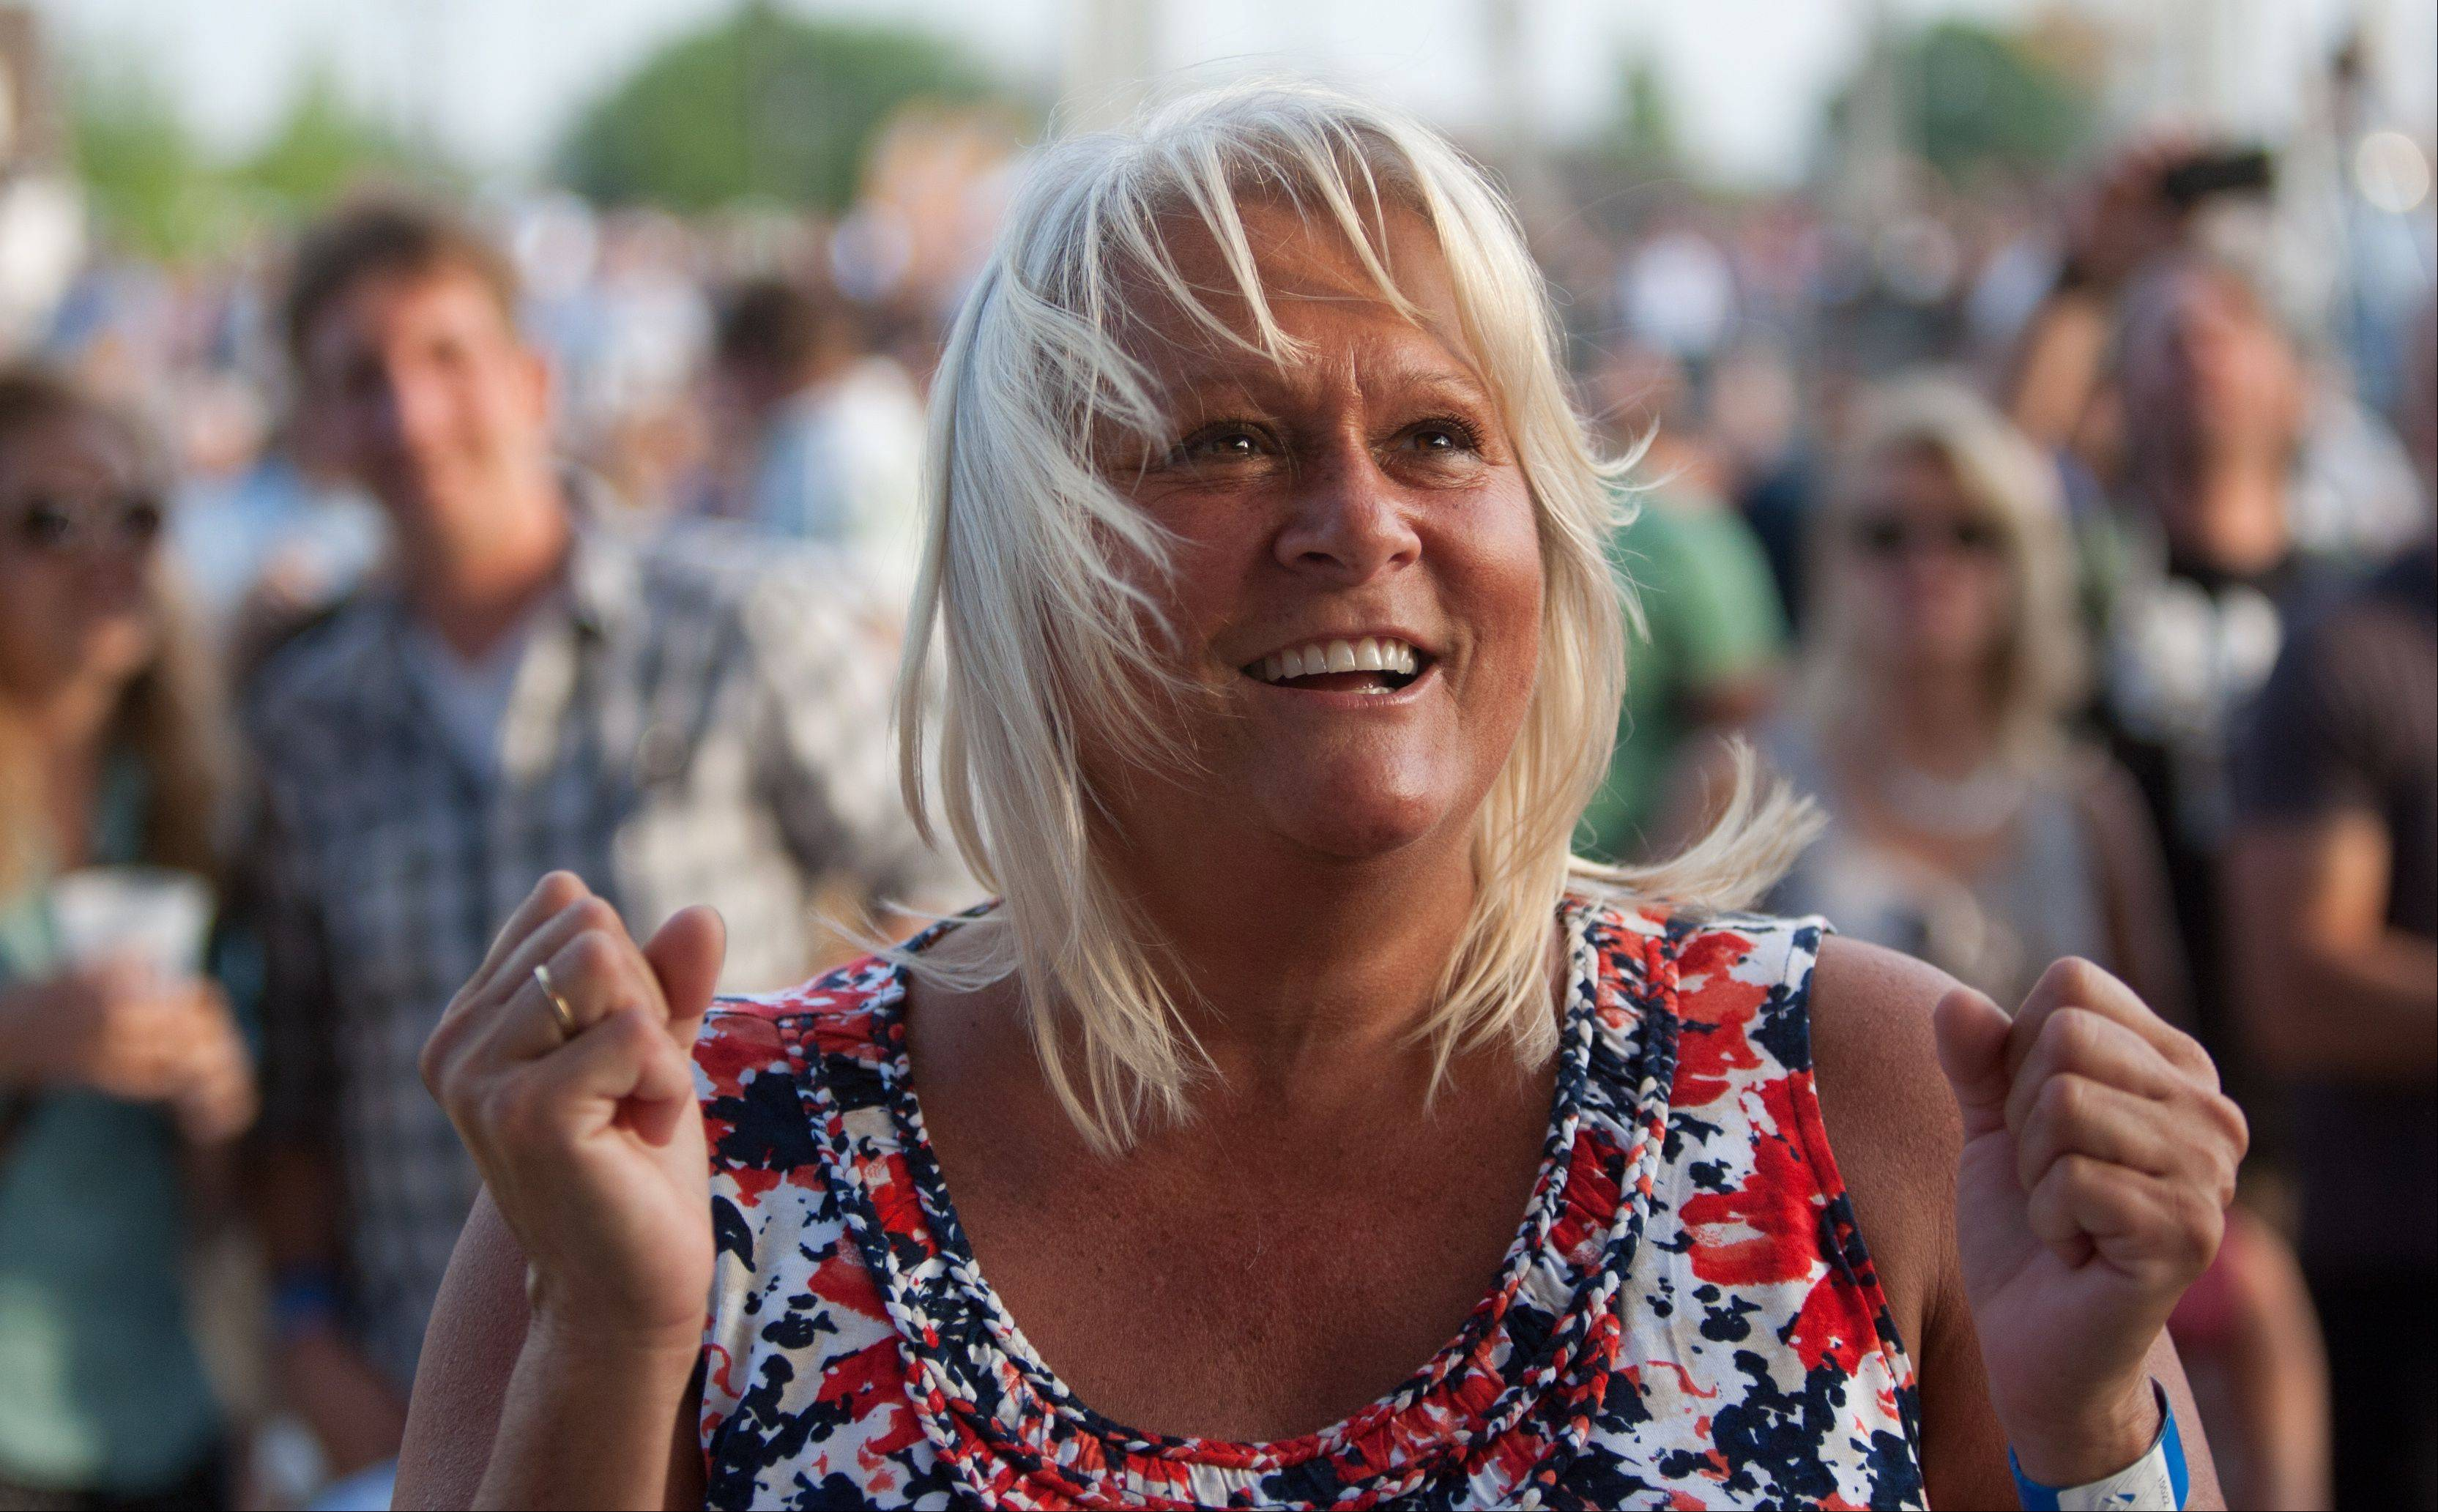 Nicki Rozmarnowski cheers on opening act JJ Grey & Mofro, during the opening night of RiverEdge Park, coinciding with the 17th annual Blues on the Fox festival.